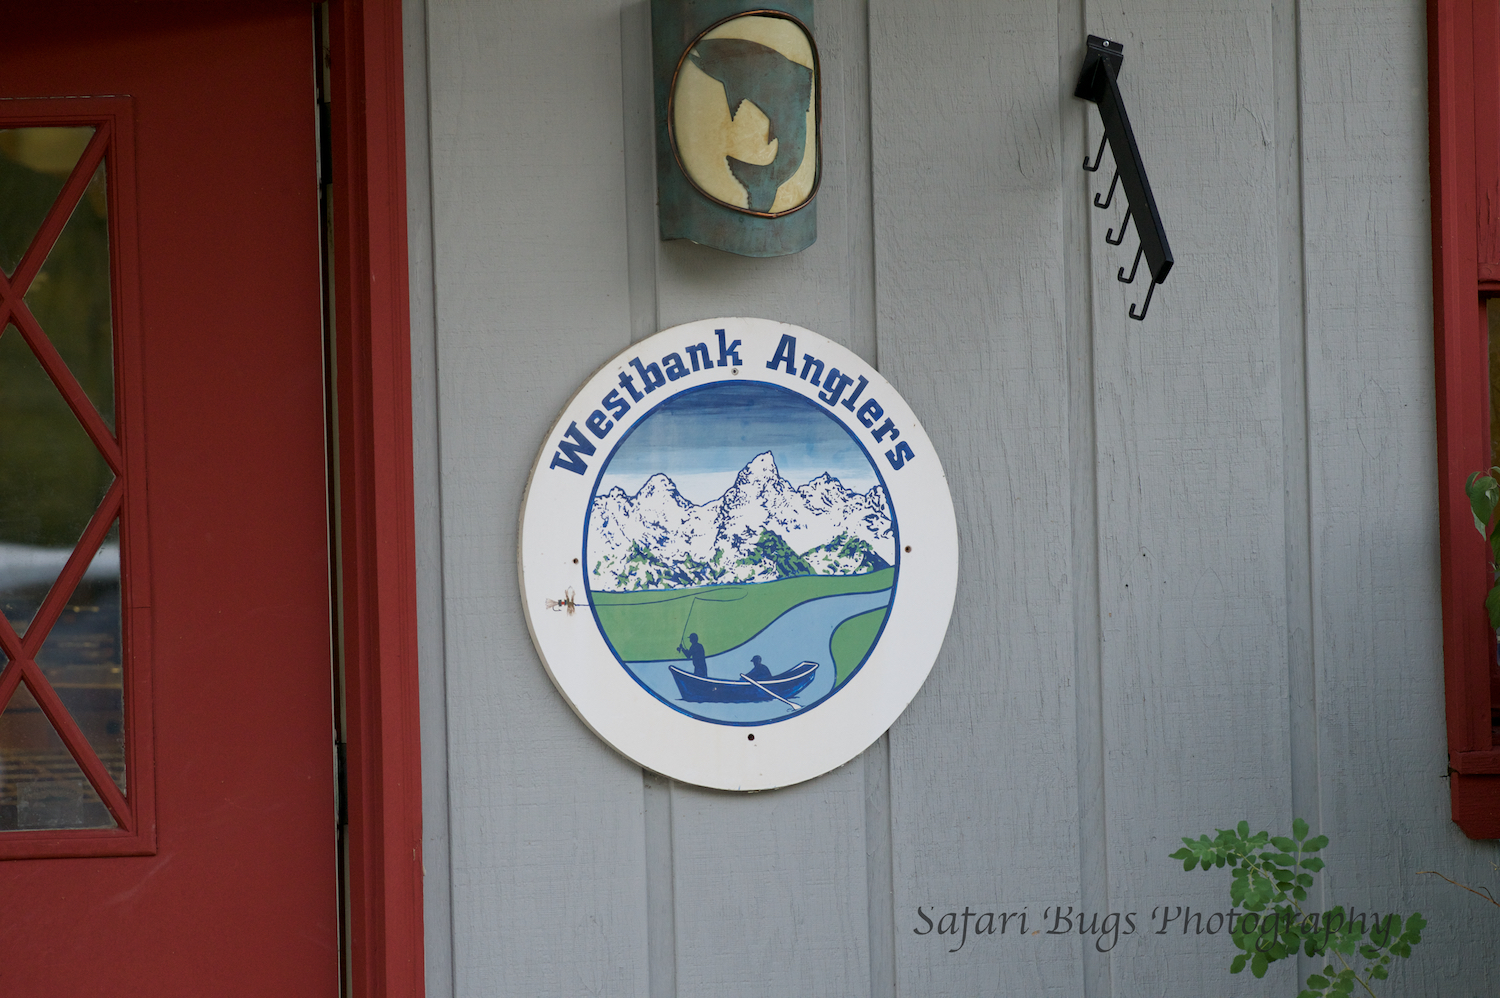 First stop, Westbank Anglers; shop near Teton Village to get our fishing license and to meet our guide.